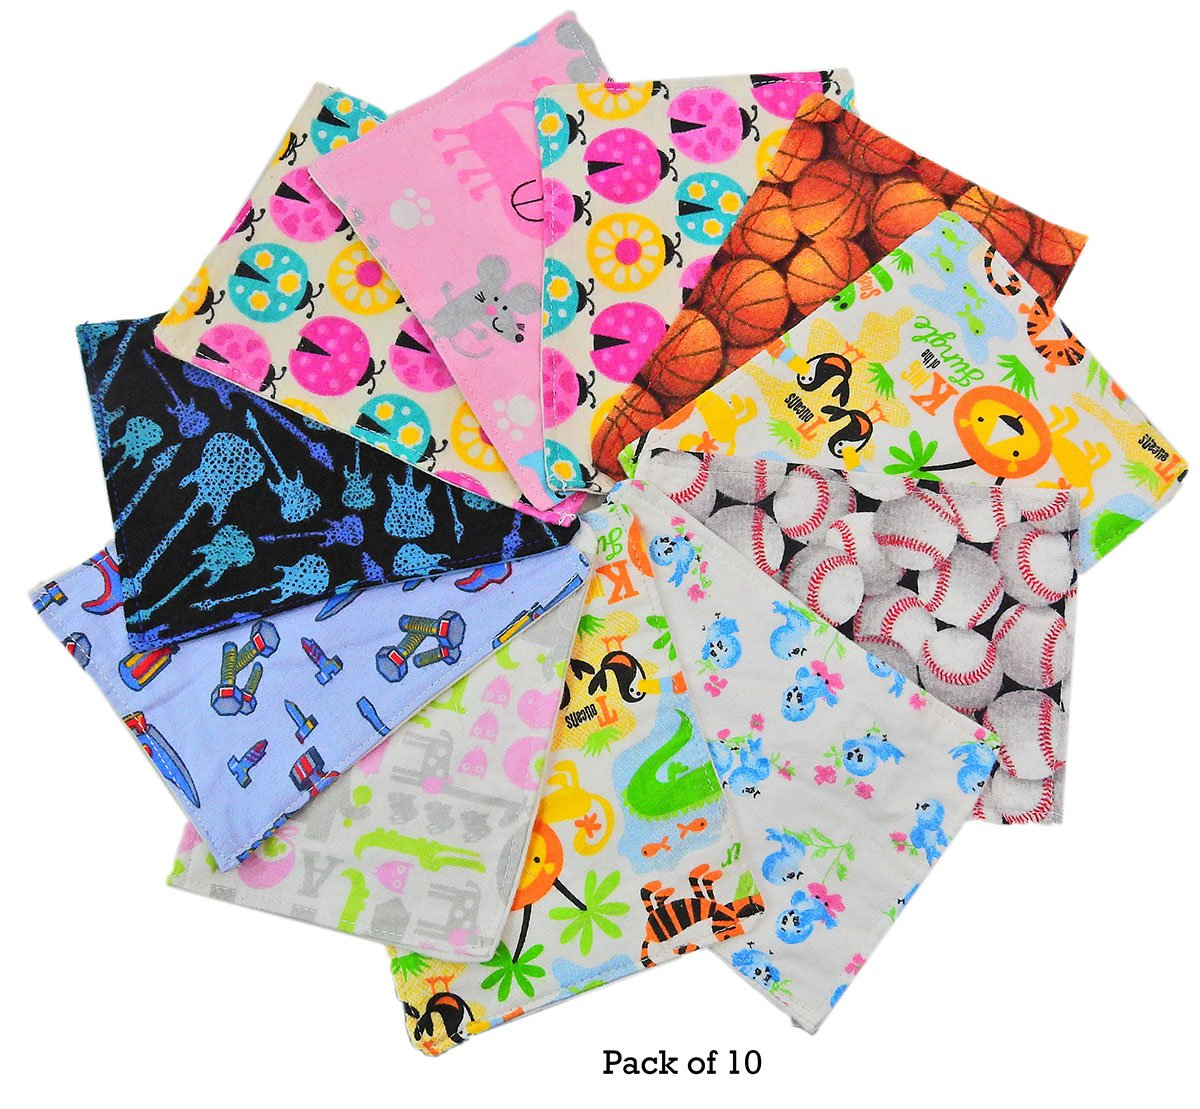 Wonder Care - Reusable Baby Cloth Wipes 5x 7 Inches- 100% Cotton Flannel Cloth- 2 Layers-ultra Soft - Assorted Color Prints with Free Box - (10 Count) by Wonder Care Surgifab Trading corp.